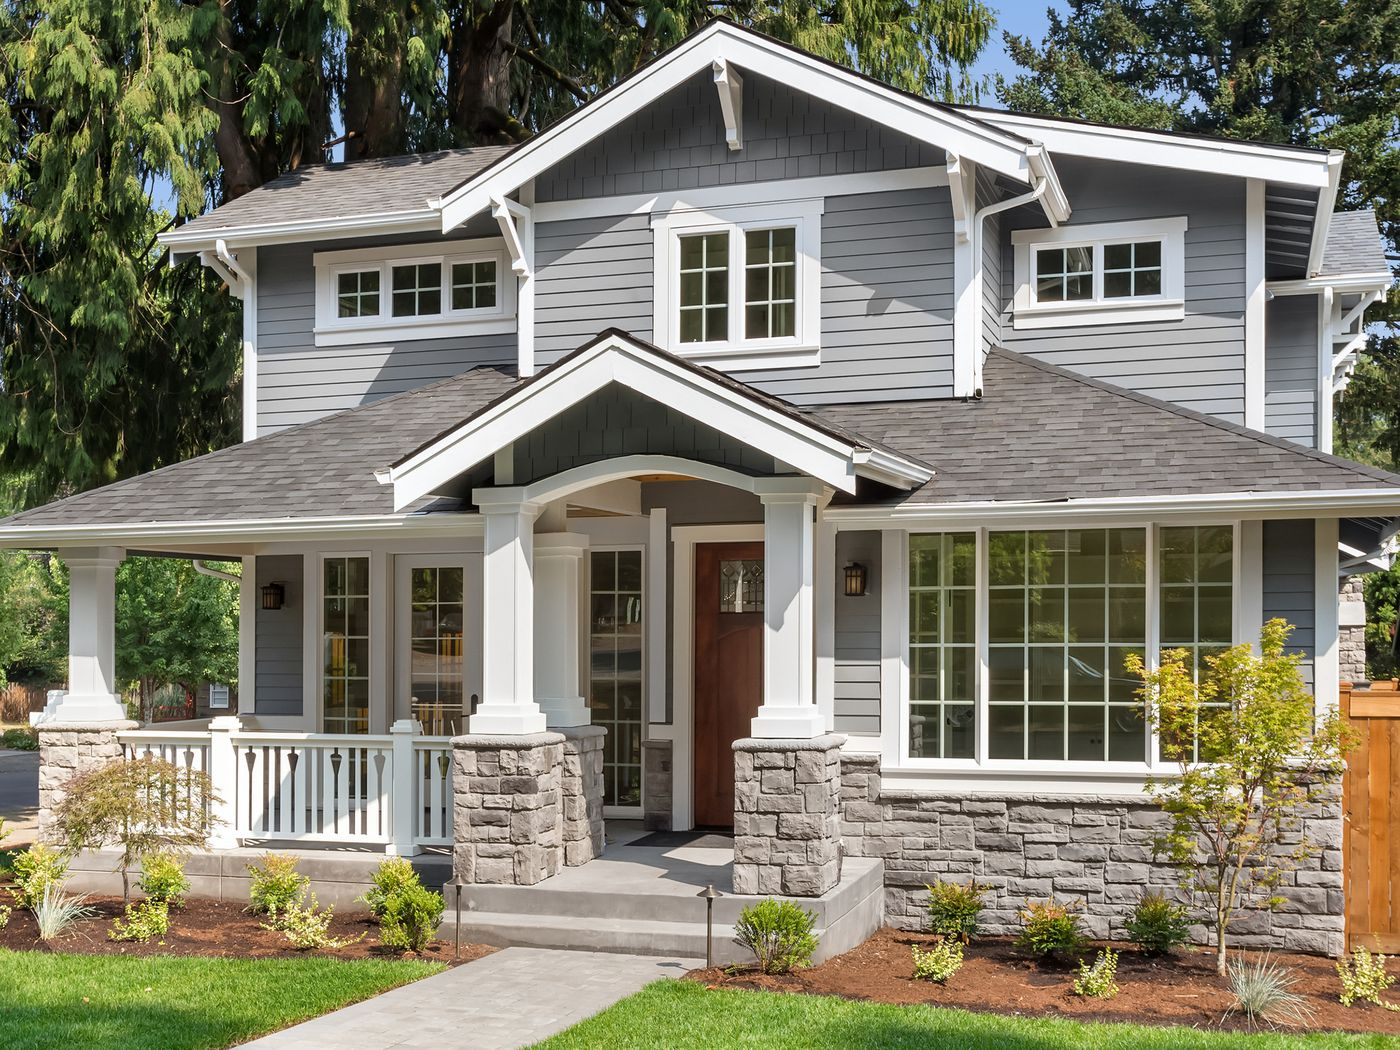 Exterior House Paint How To Choose The Right One This Old House